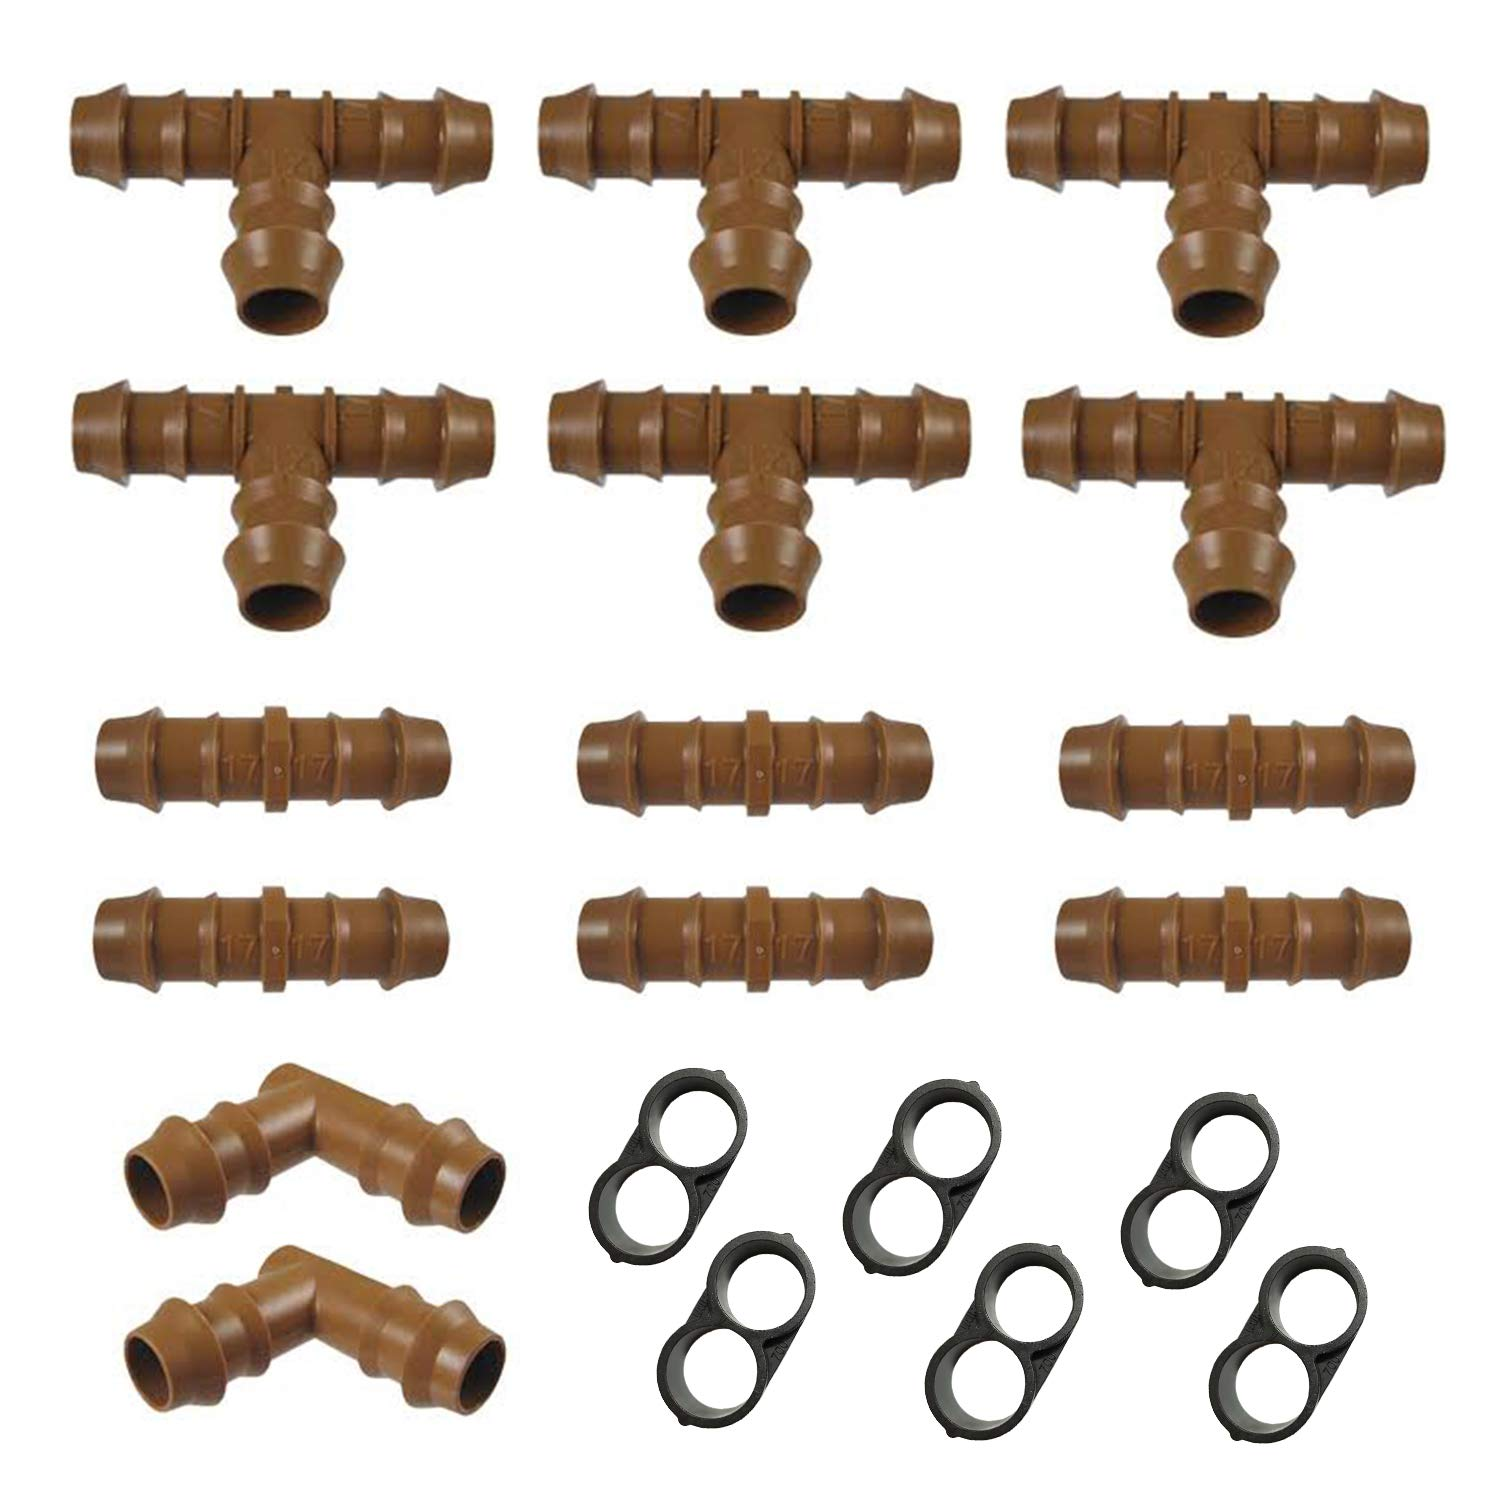 Habitech Irrigation Fittings Kit for 1/2'' Tubing 20 PIECE SET - 6 Tees, 6 Couplings, 2 Elbows, 6 End Cap Plugs - Barbed Connectors For Rain Bird And Compatible Drip or Sprinkler Systems